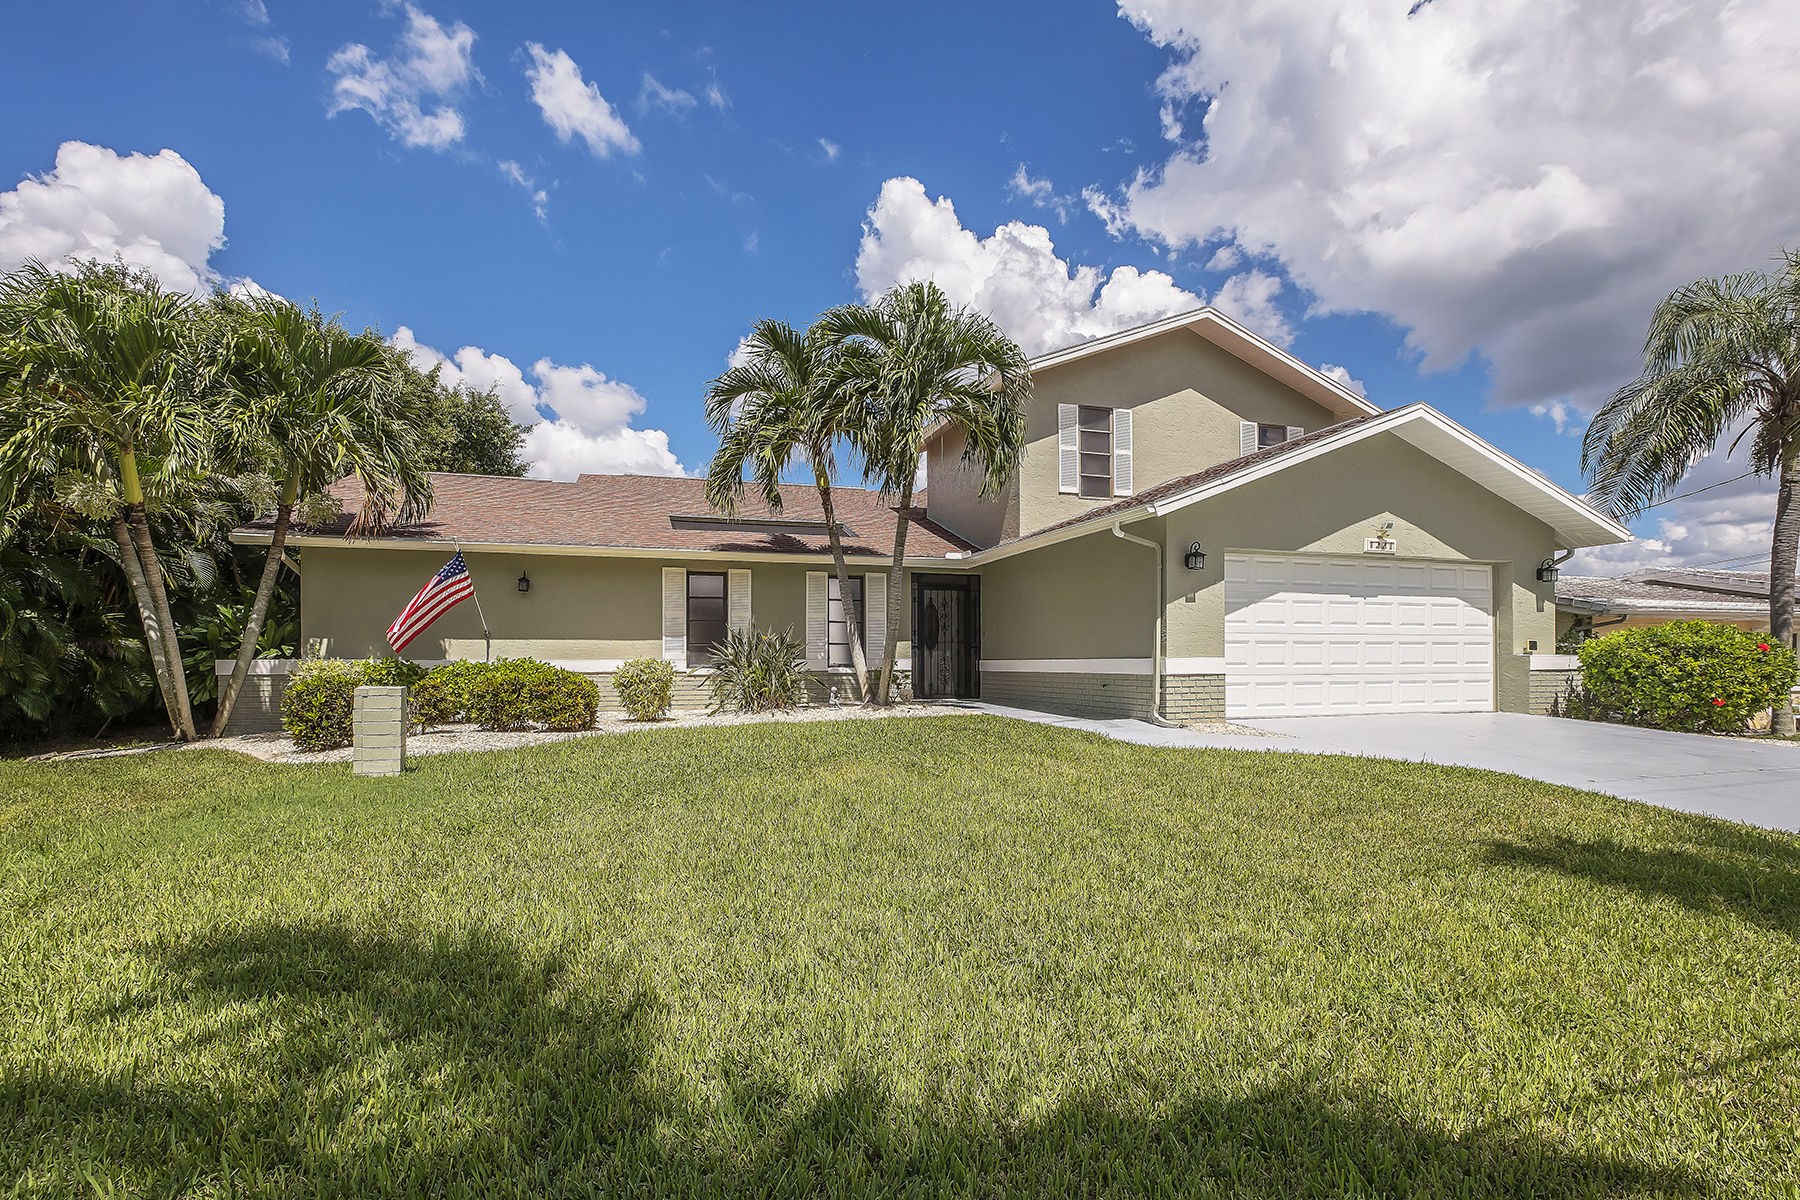 Single Family Home for Sale at CAPE CORAL 1221 El Dorado Pkwy E Cape Coral, Florida 33904 United States